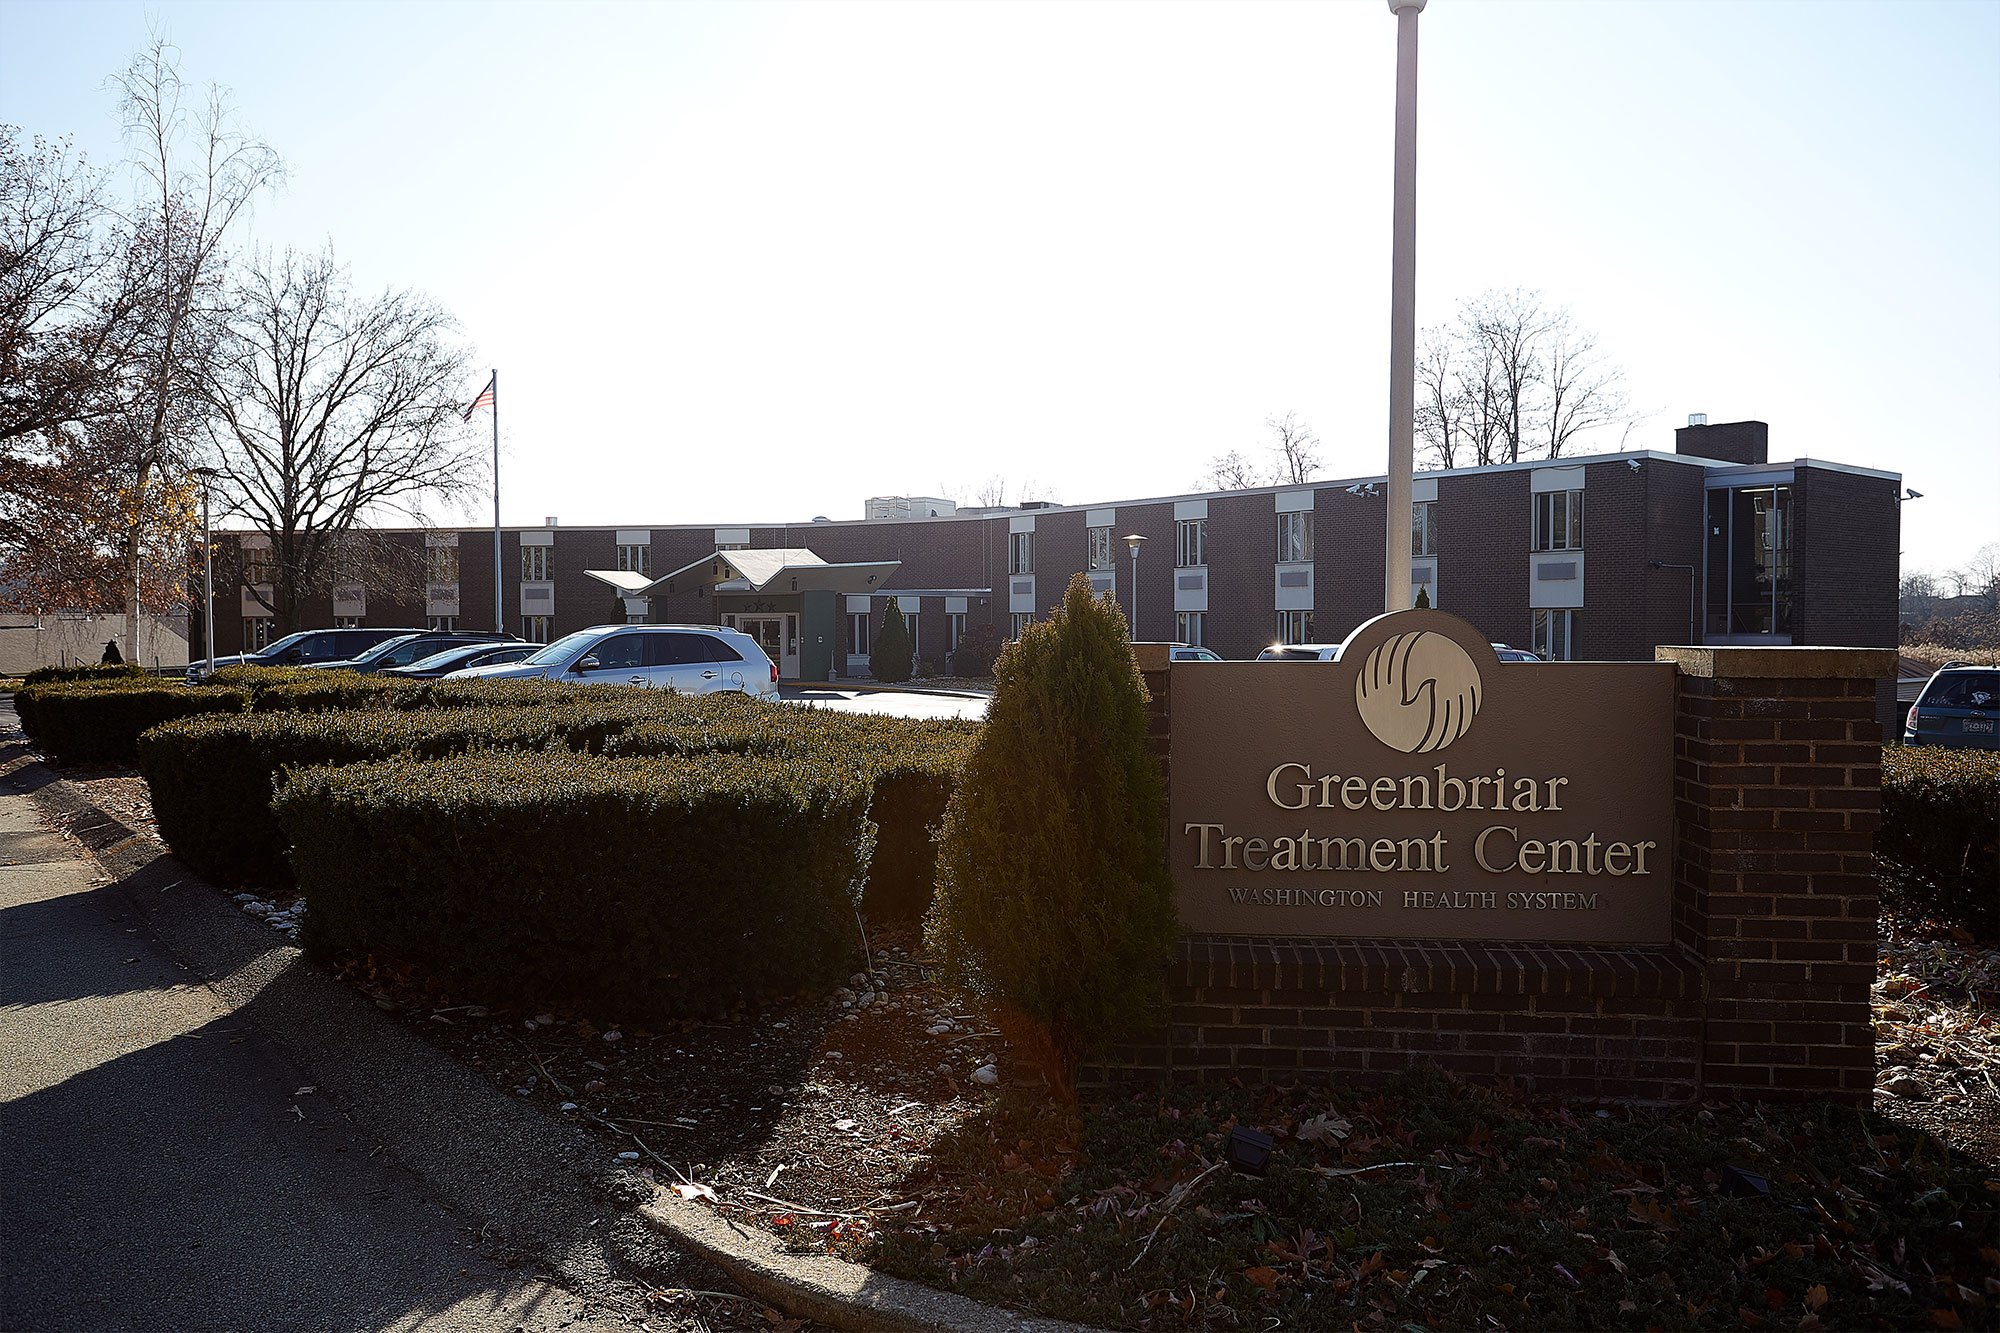 Photo of Greenbriar Treatment Center Building